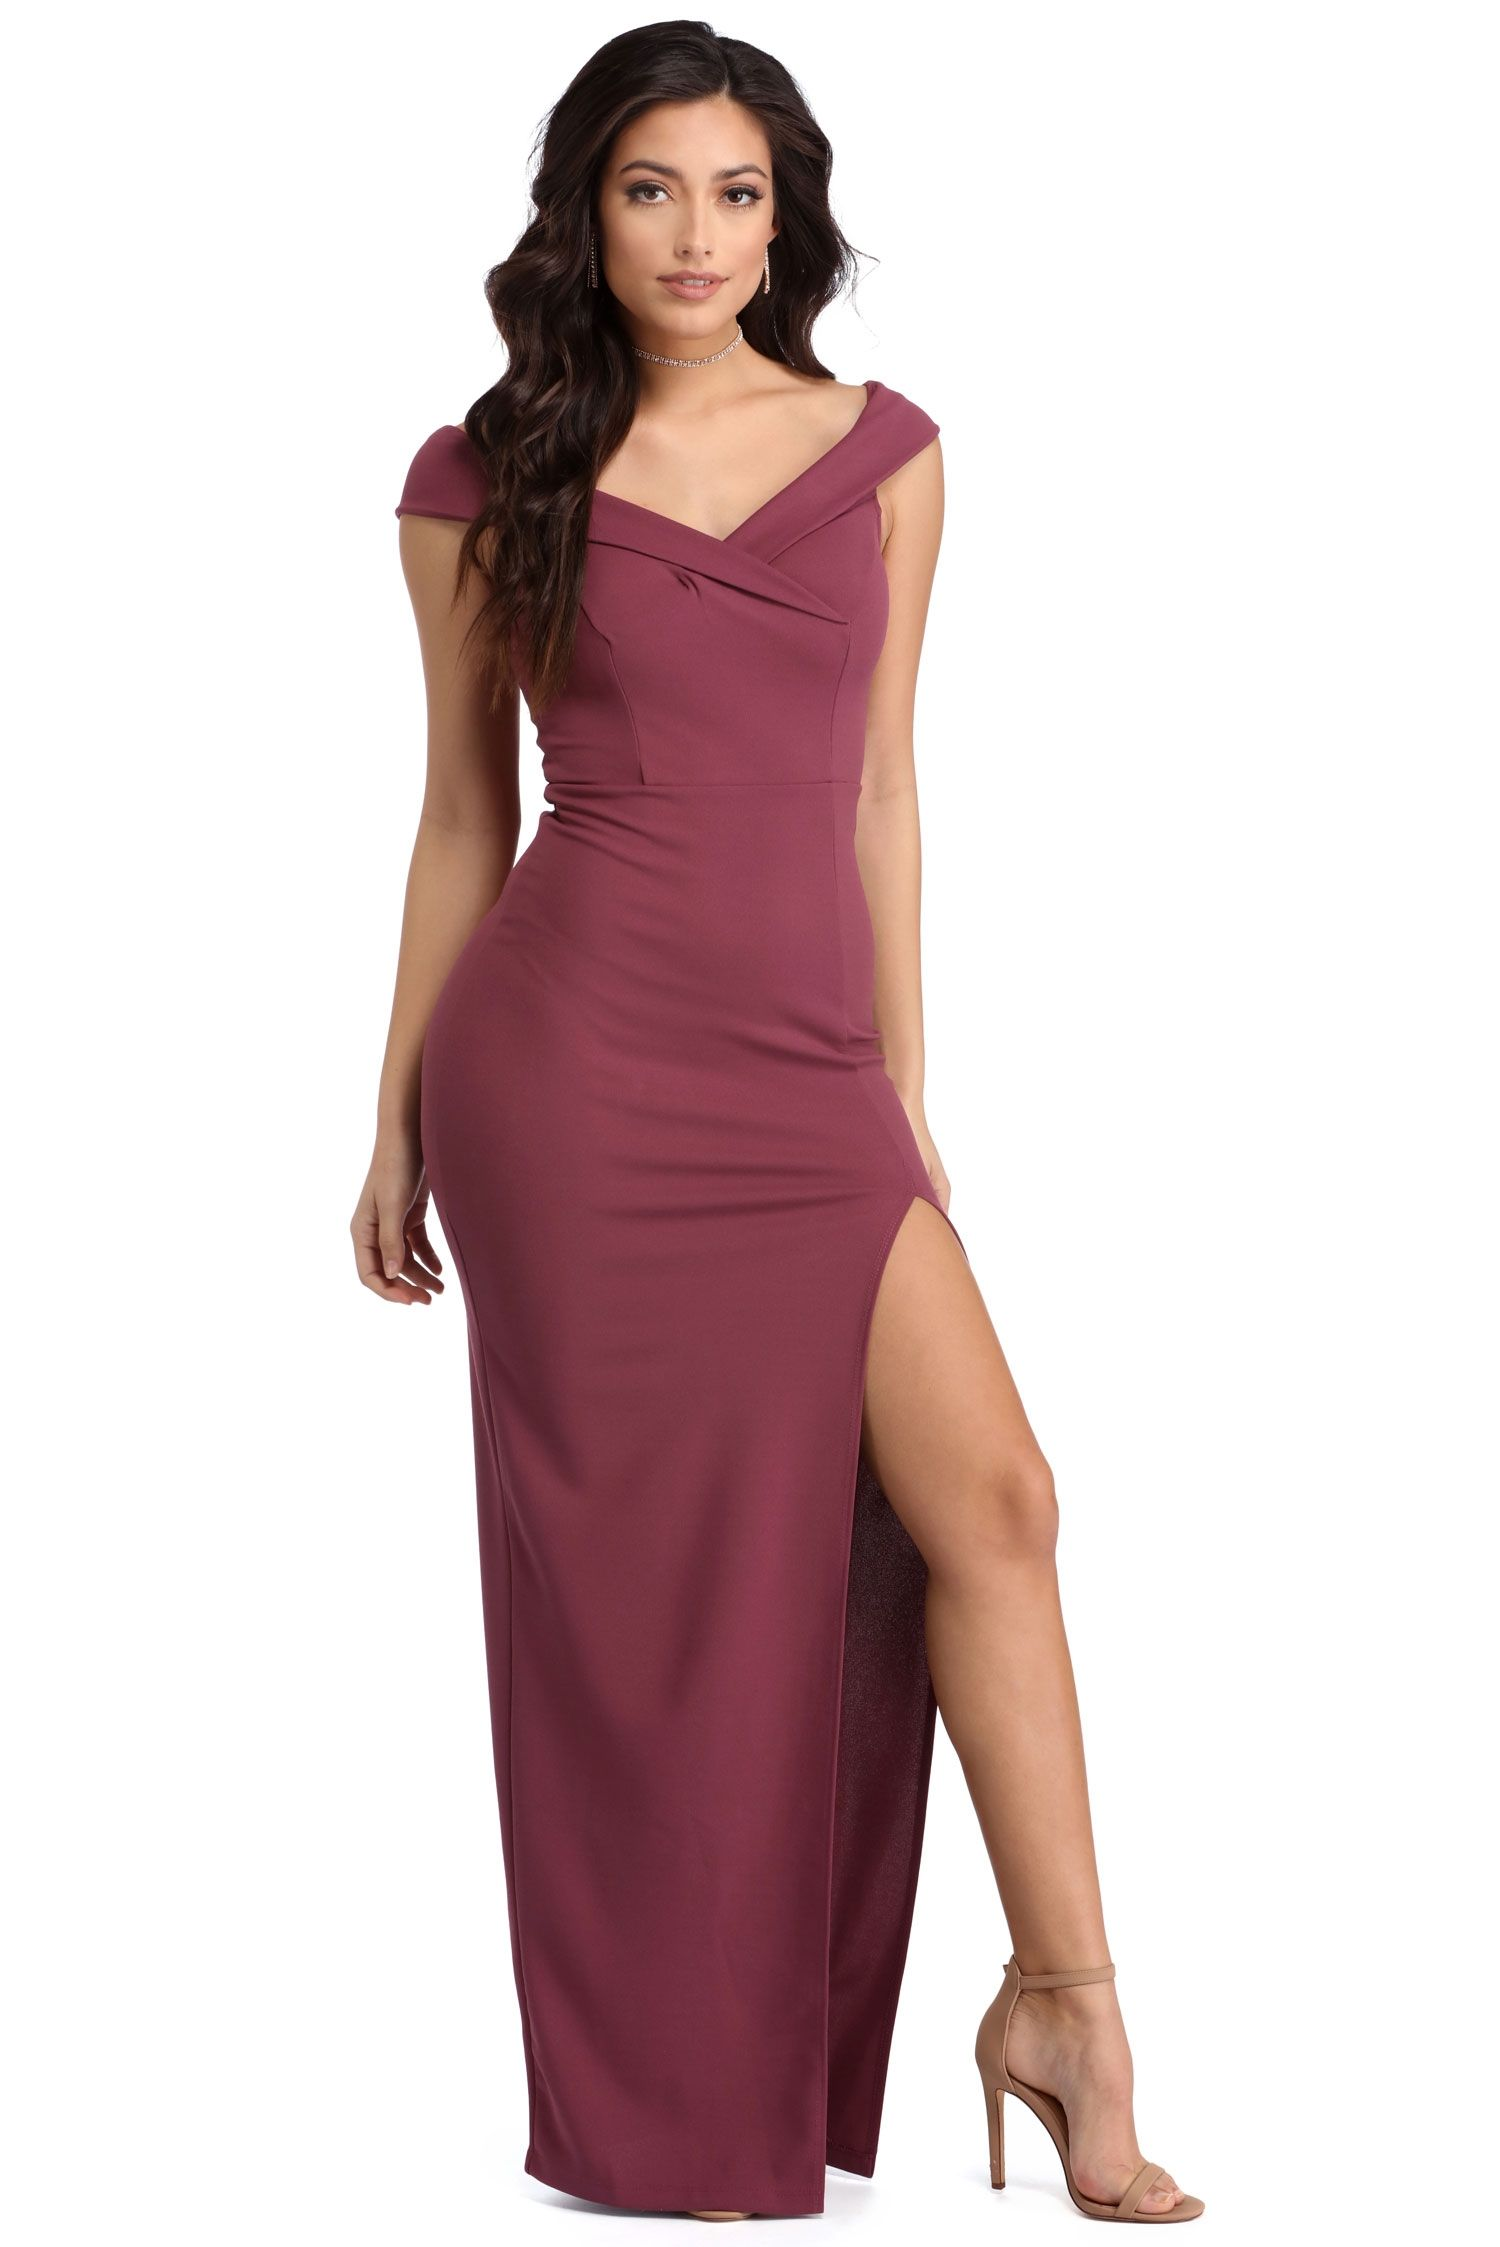 de87532bb19f Elle Mauve Off The Shoulder Dress